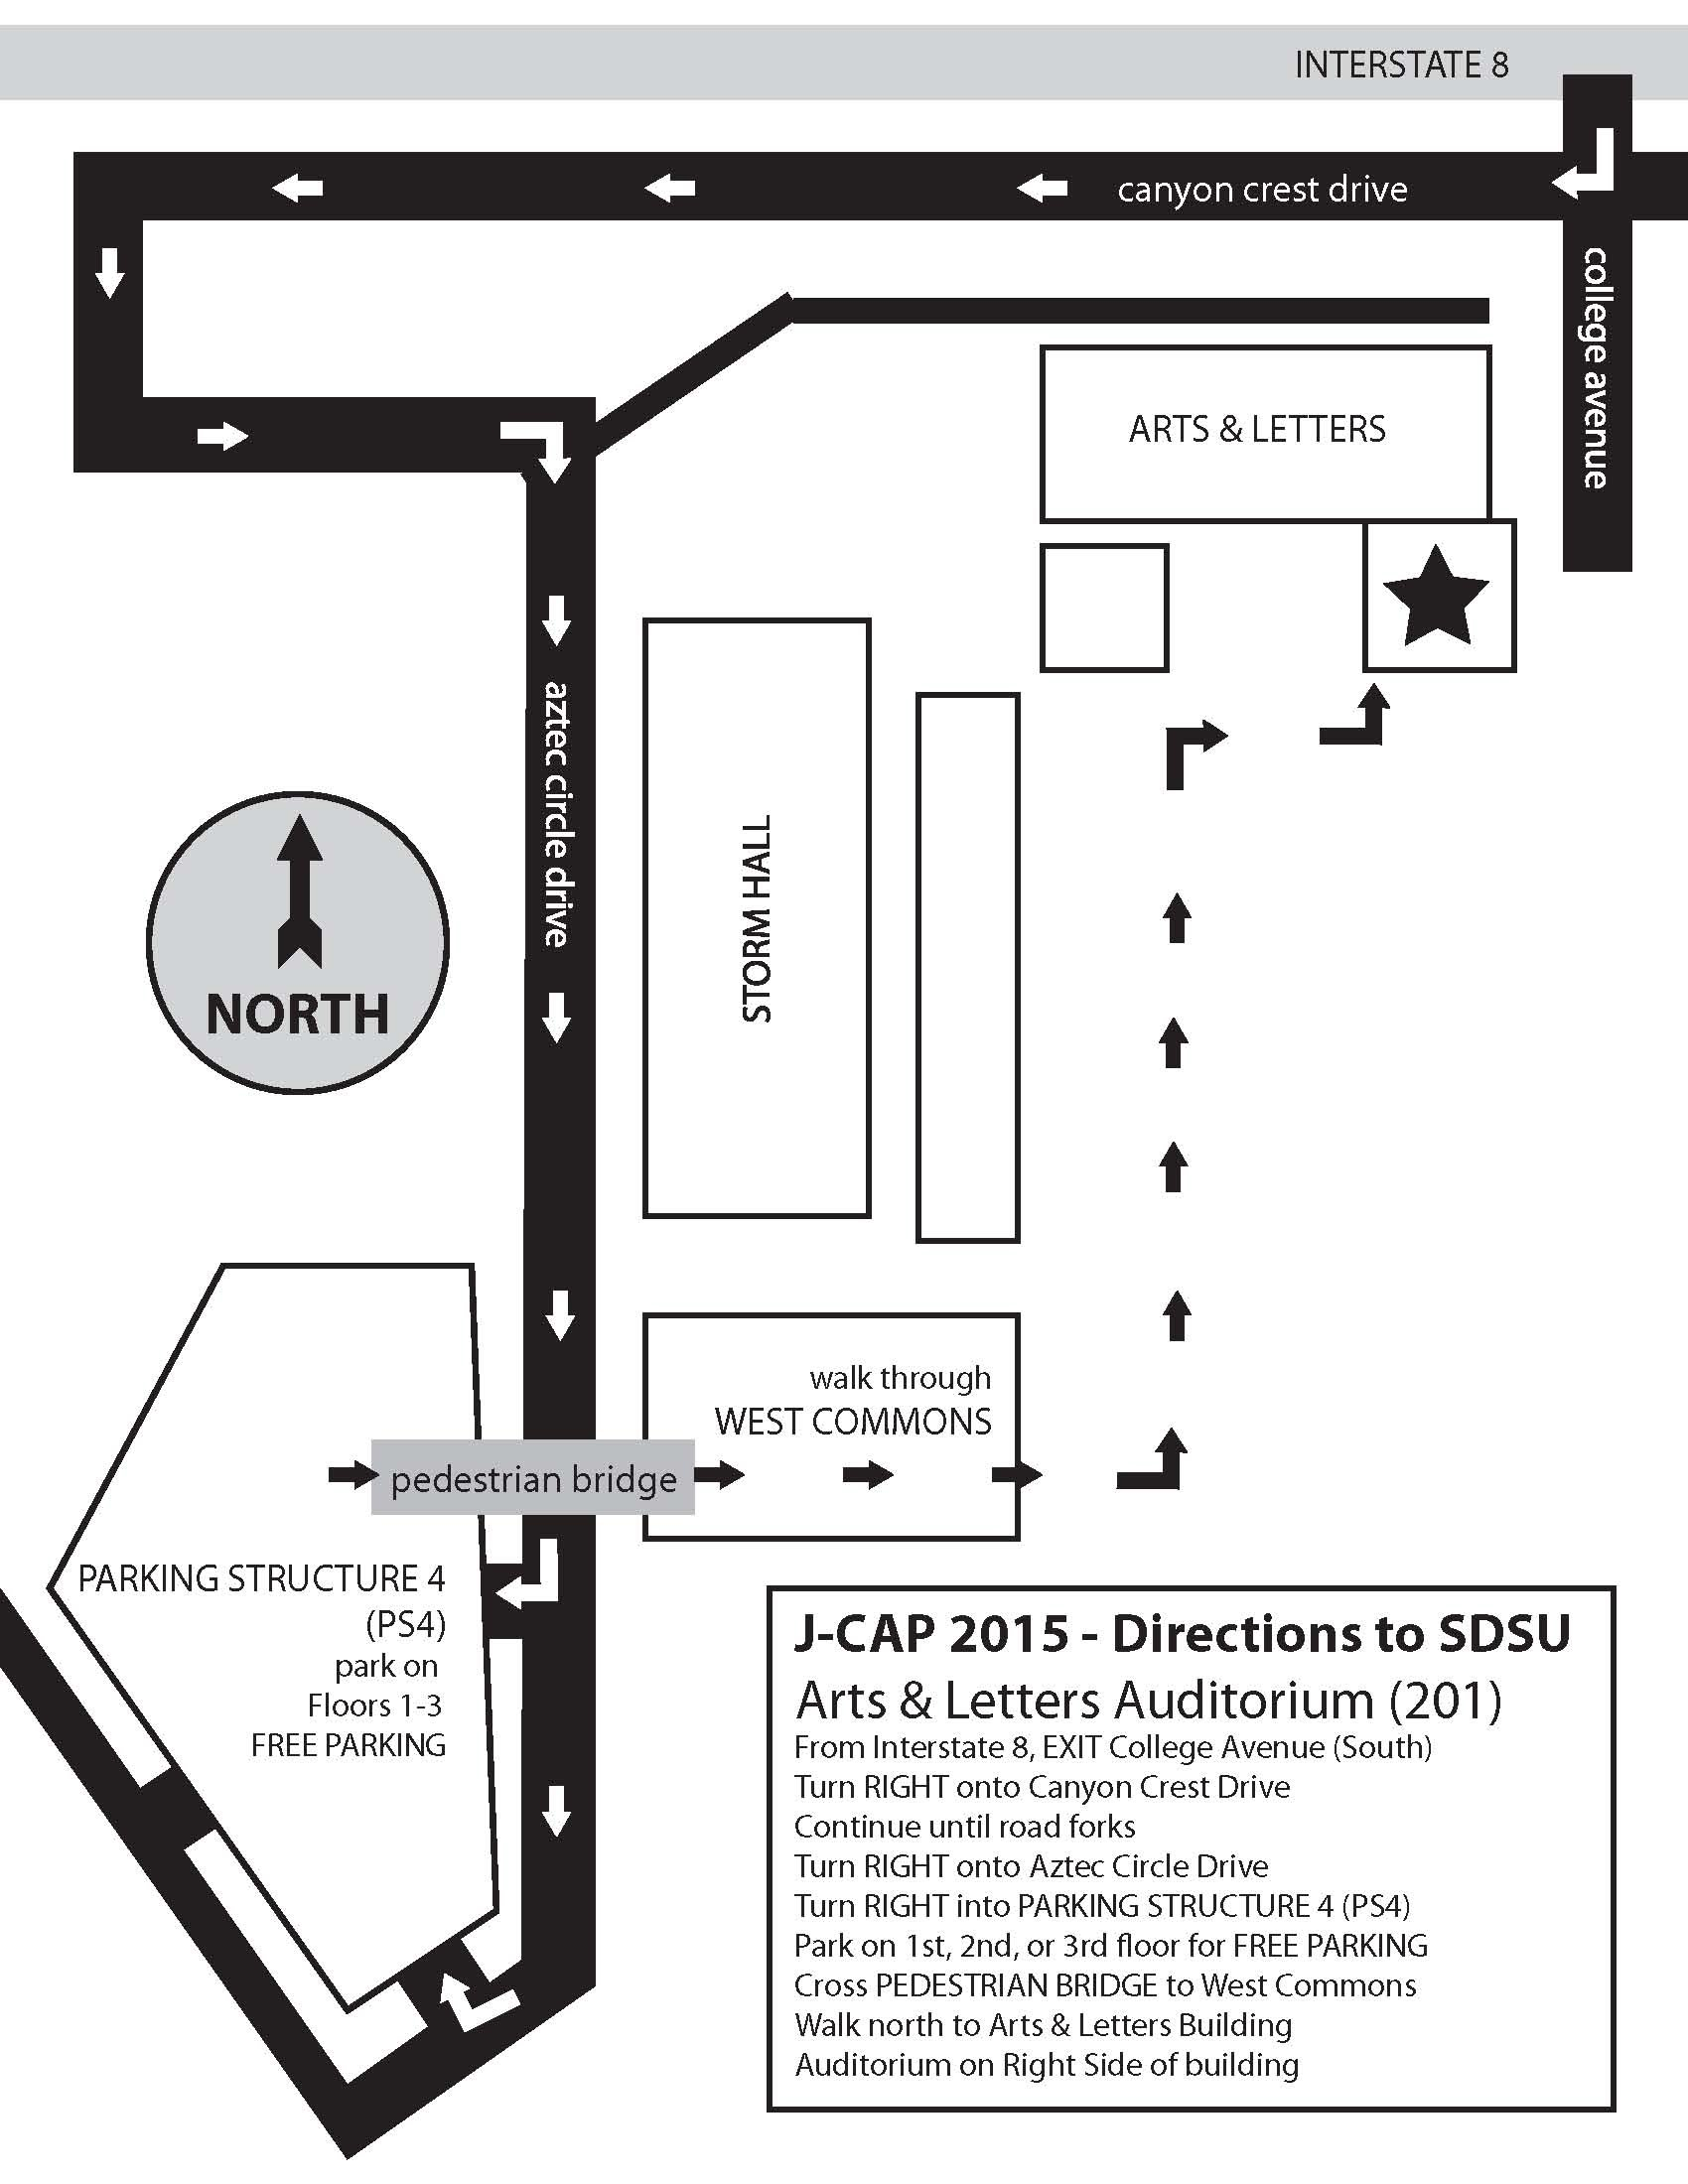 JCAP Competition held at SDSU. See Map